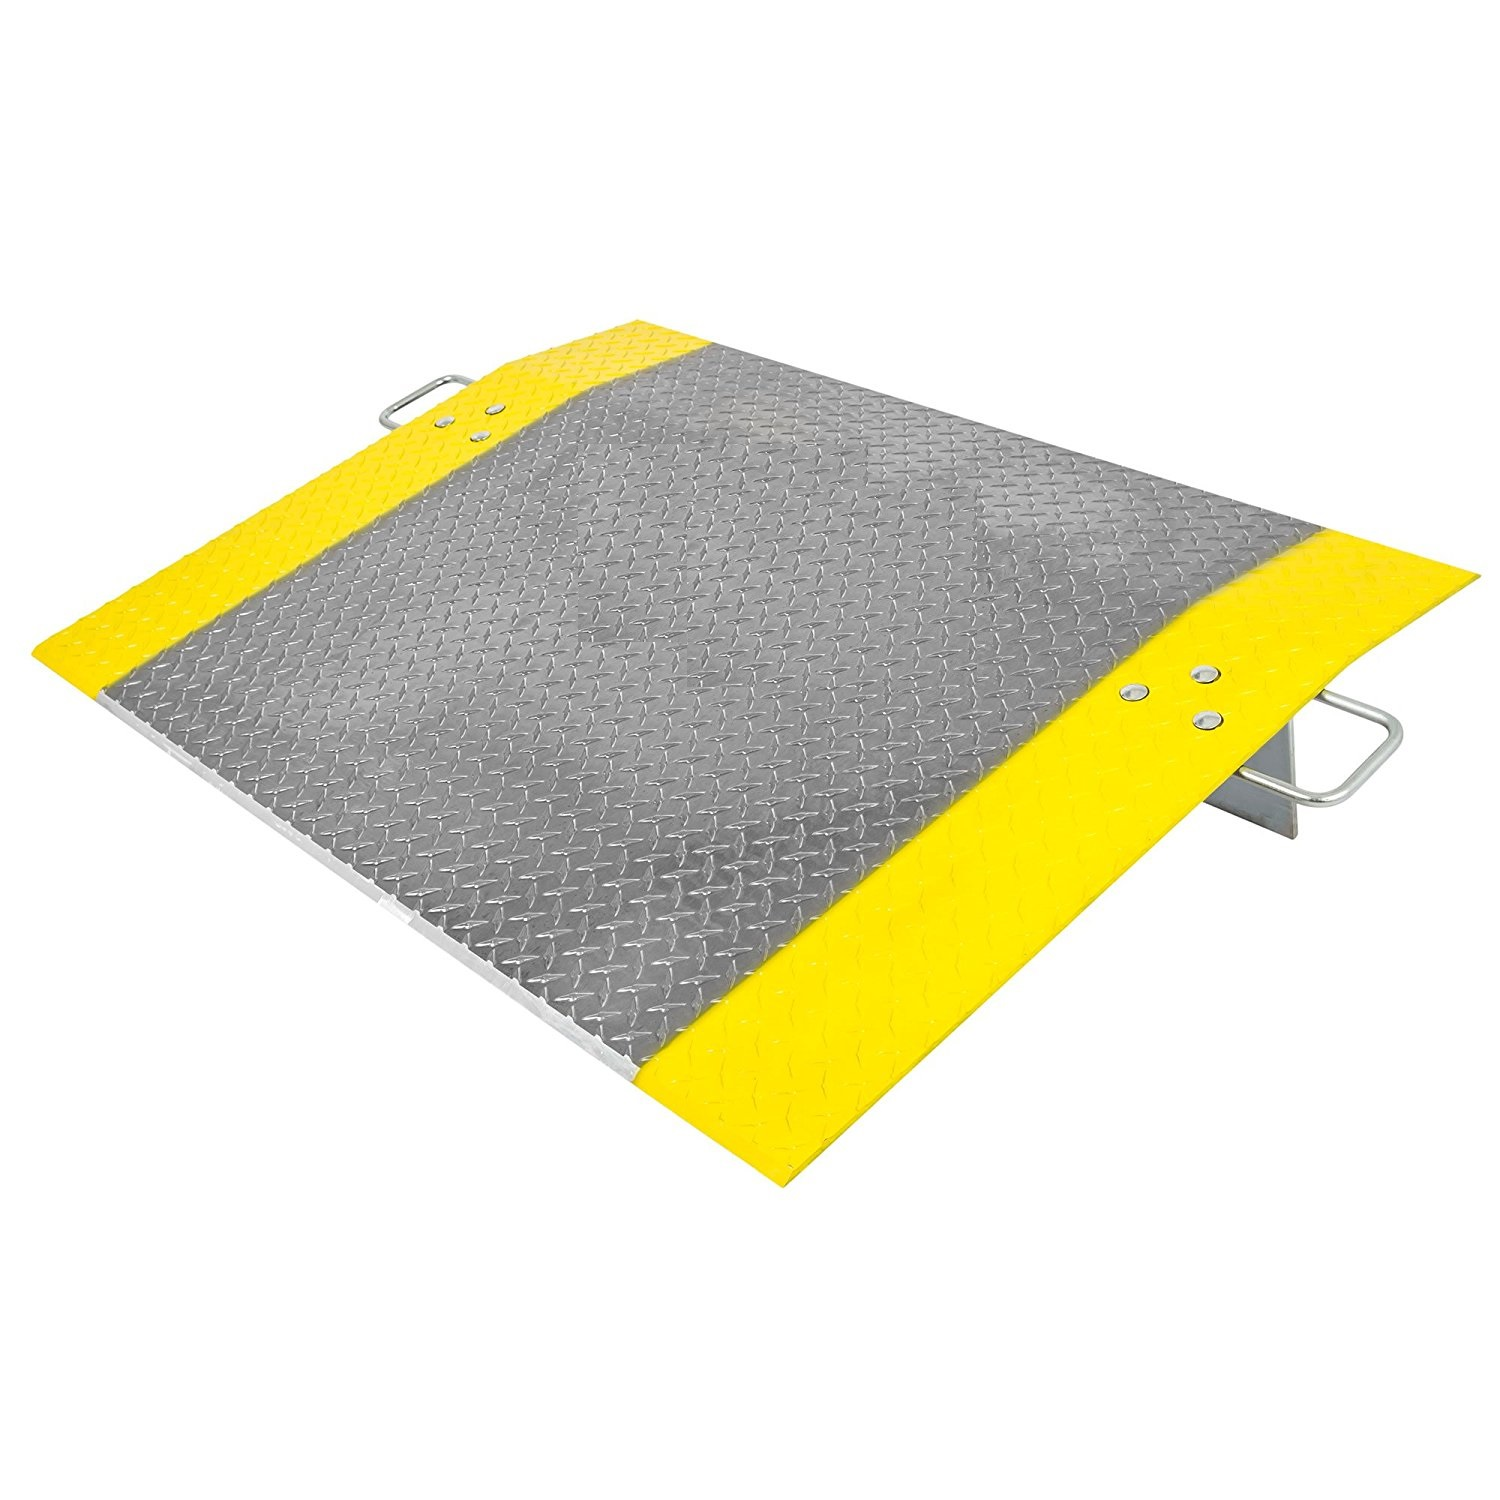 PDA Aluminum Dock Plate  Different Sizes Available  Mr